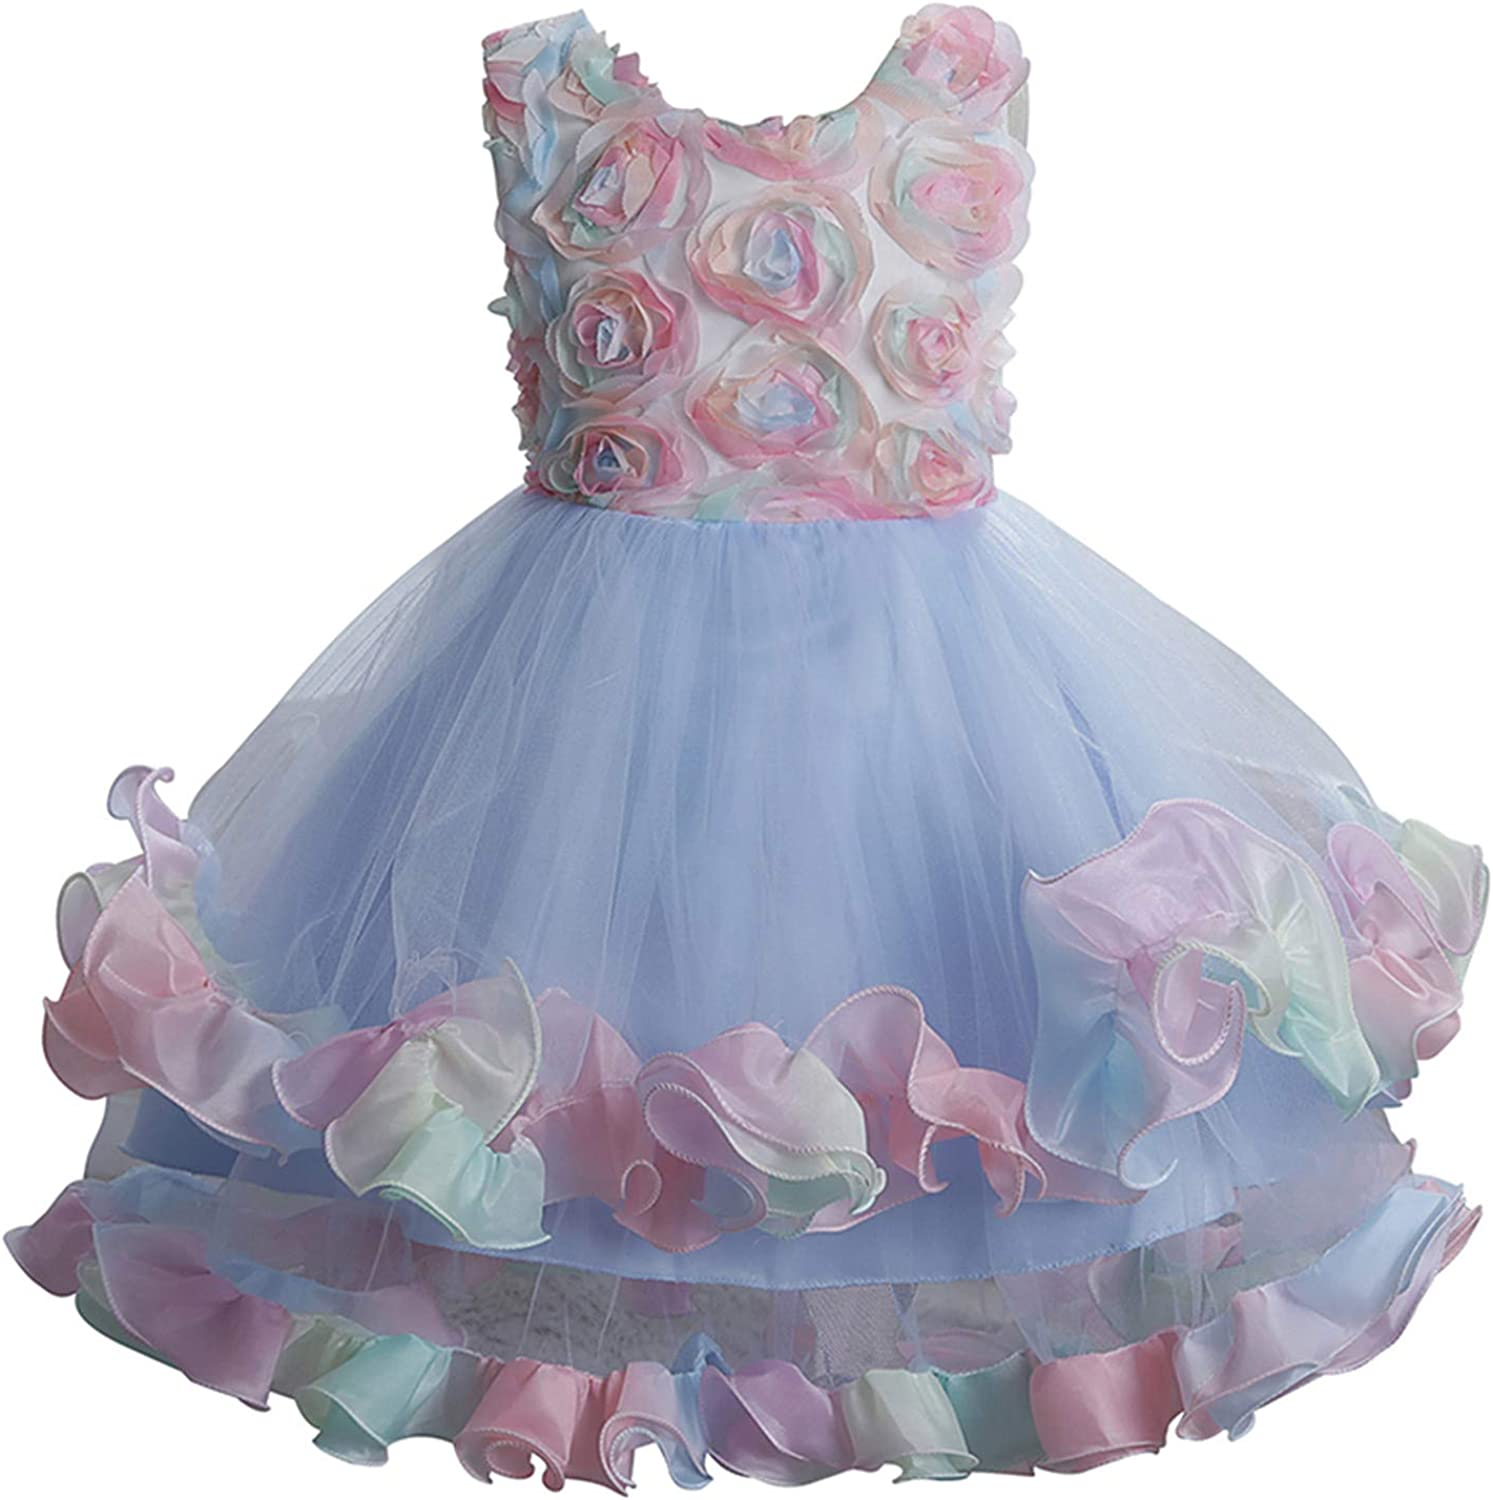 Toddler Kids Baby Girls Princess Dress Floral Tutu Gown Dress Formal Princess Party Tulle Tiered Full Dress